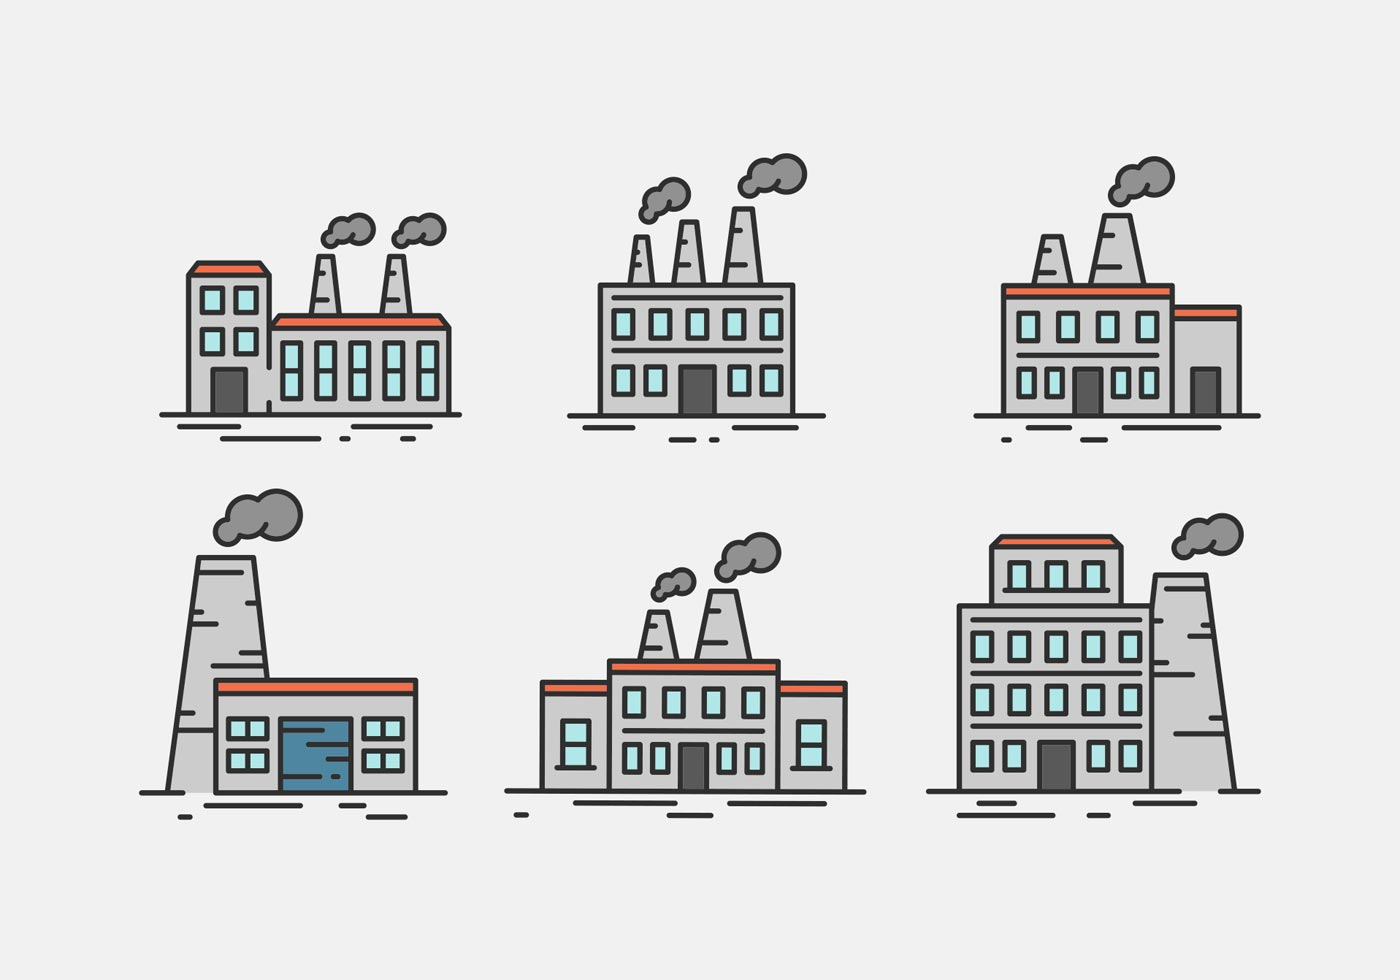 Factory Vector Illustrations In Outline Style